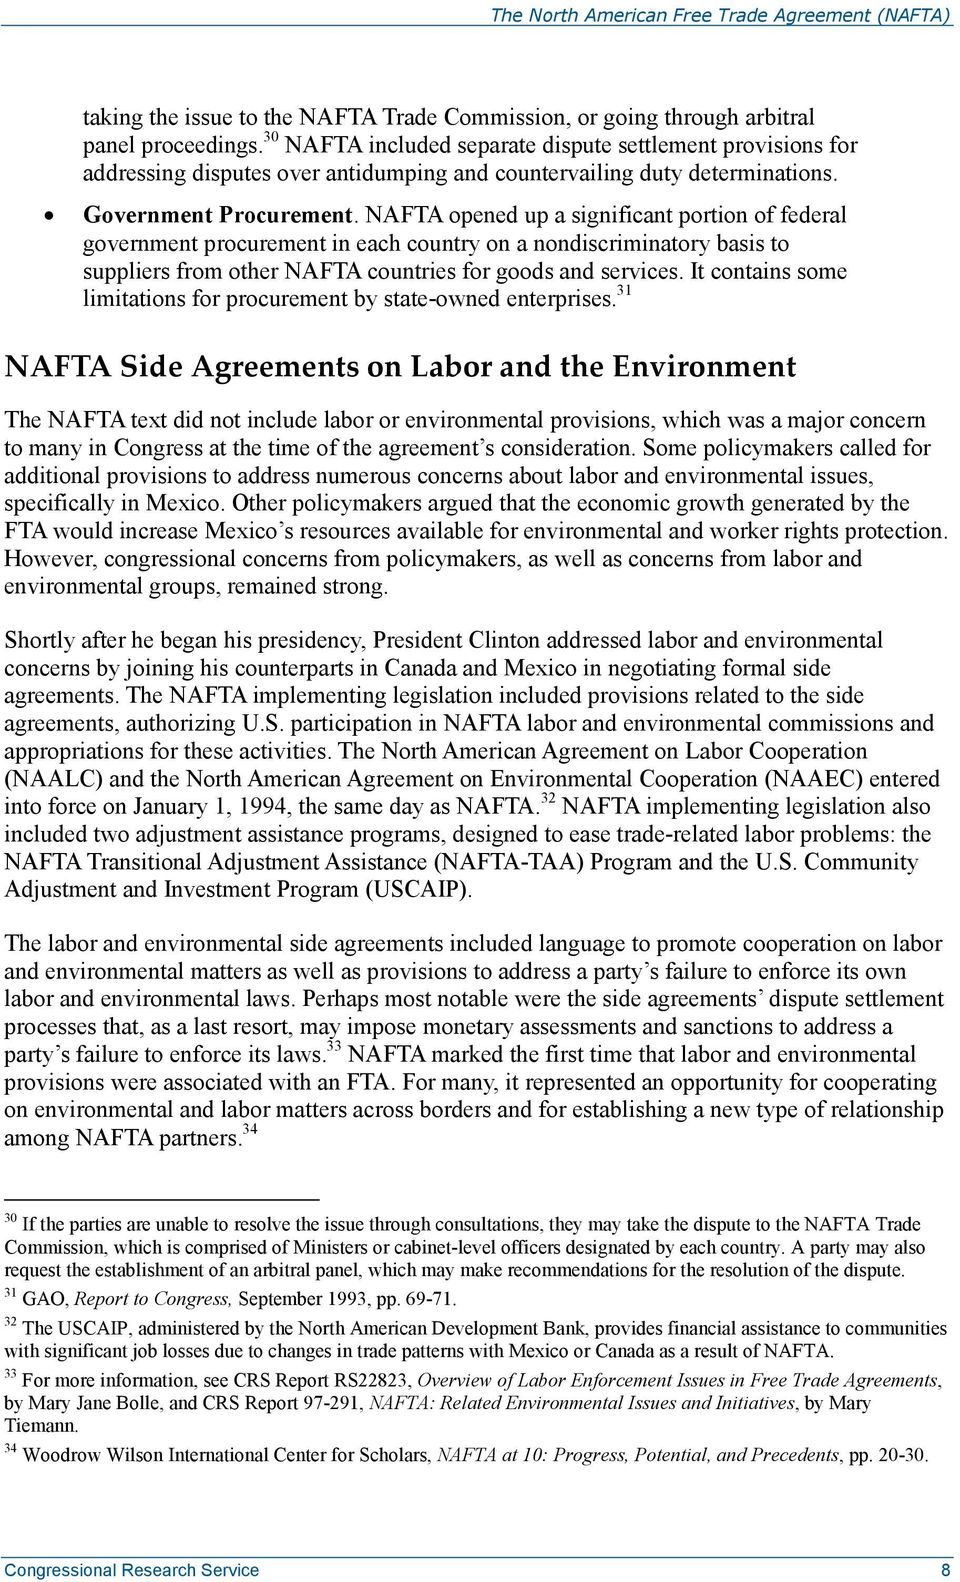 The North American Free Trade Agreement Nafta Pdf